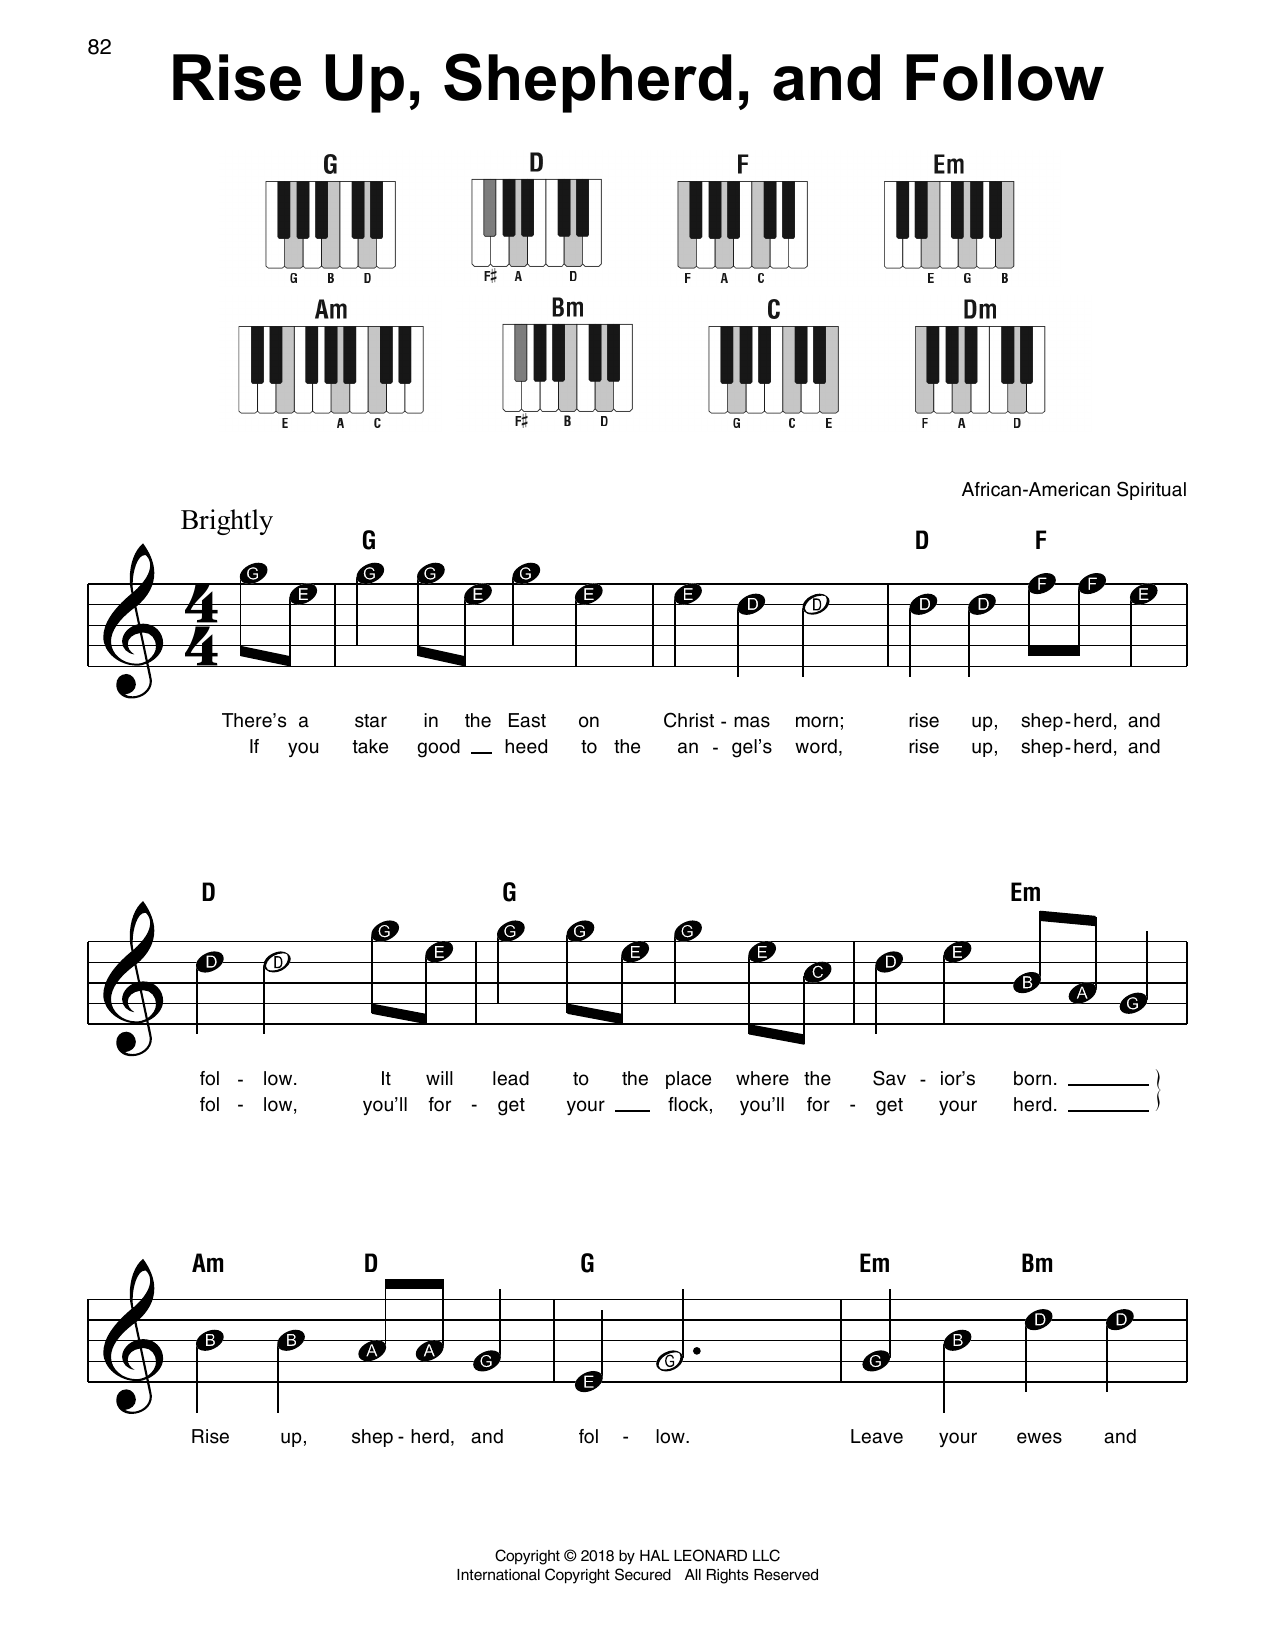 African-American Spiritual Rise Up, Shepherd, And Follow sheet music notes and chords